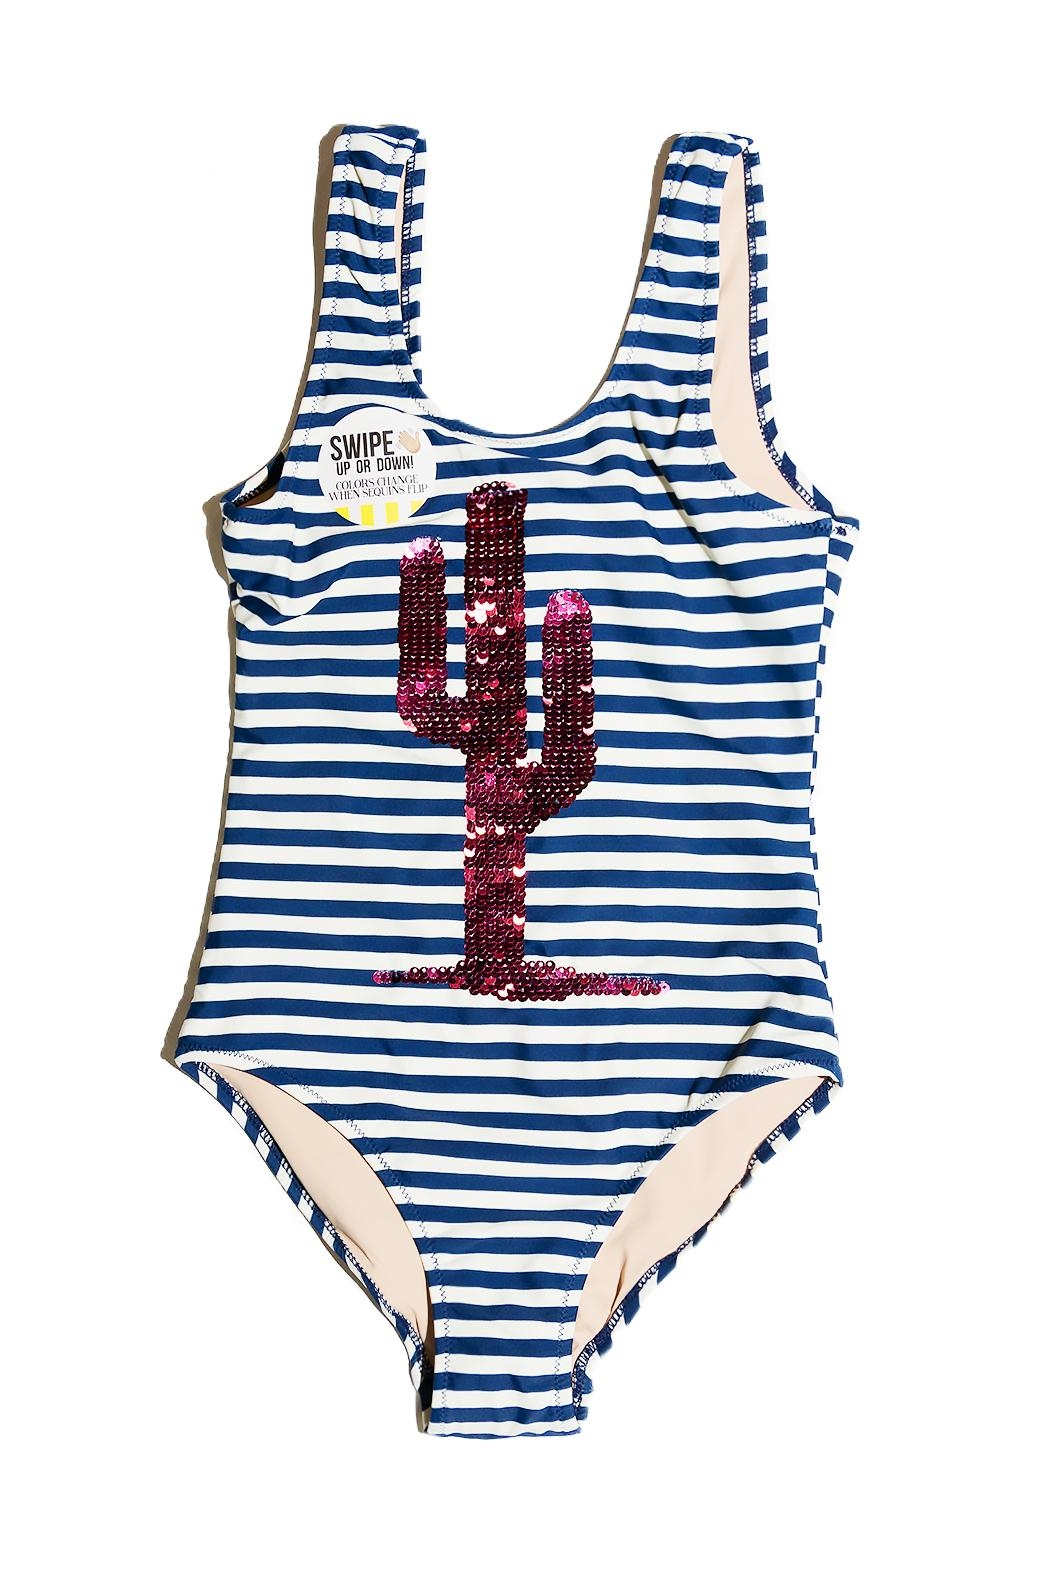 shade critters PALM BEACH Cactus Stripe One-Piece - Main Image